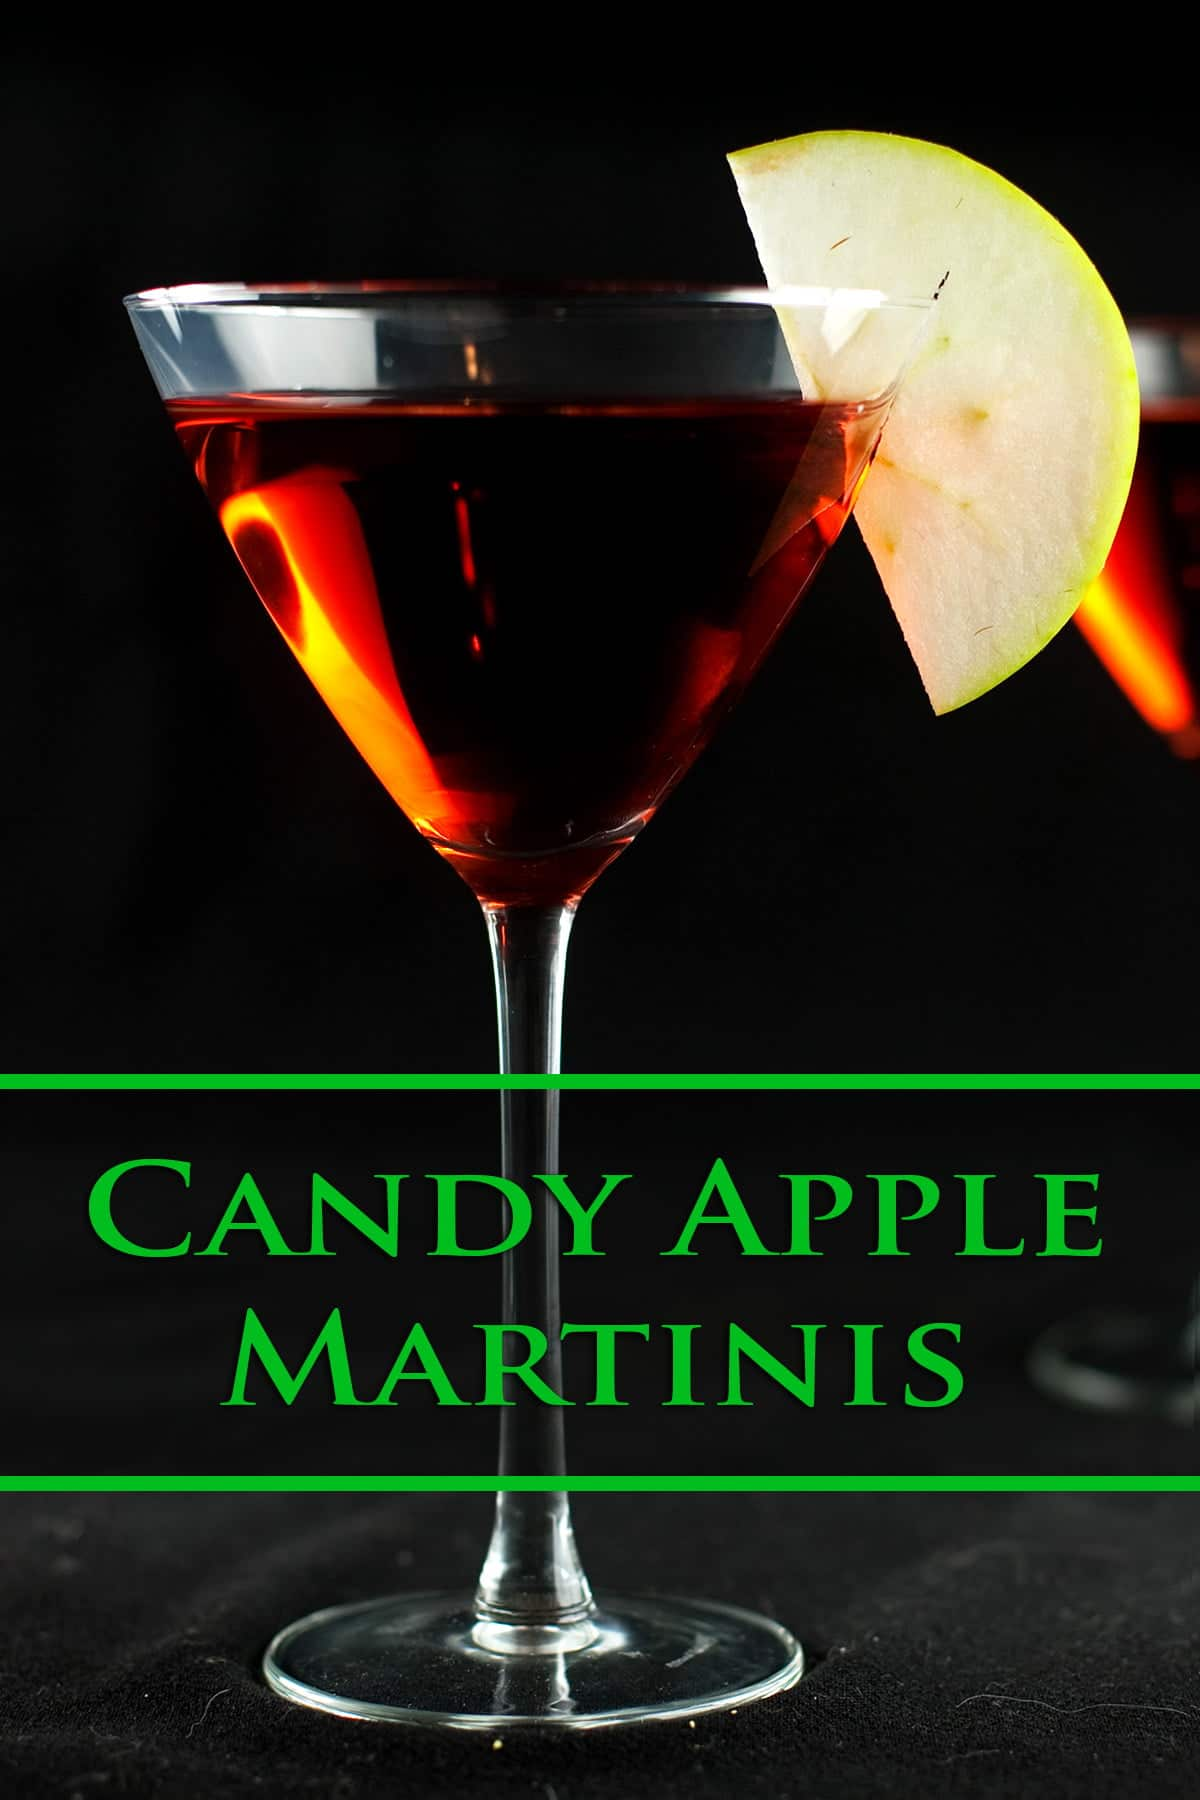 Two large martini glasses are filled with a red liquid, and garnished with apple slices.